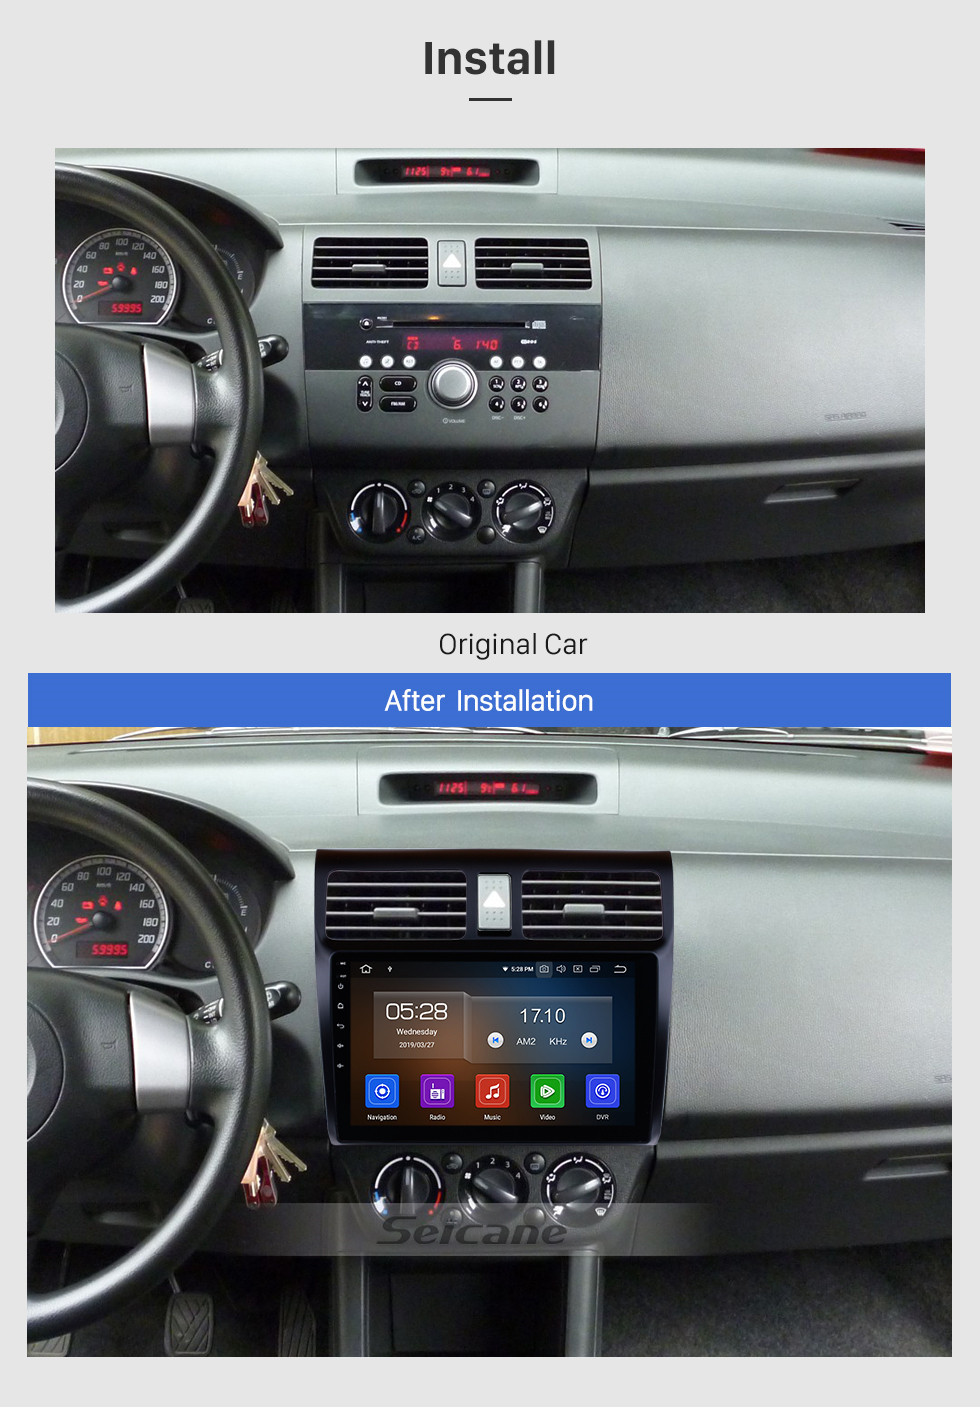 Seicane Aftermarket Radio 10.1 inch Android 10.0 GPS Navigation For 2005-2010 SUZUKI SWIFT Mirror Link Bluetooth WIFI Audio Support Rearview Camera 1080P Video DVR DAB+ DVD Player